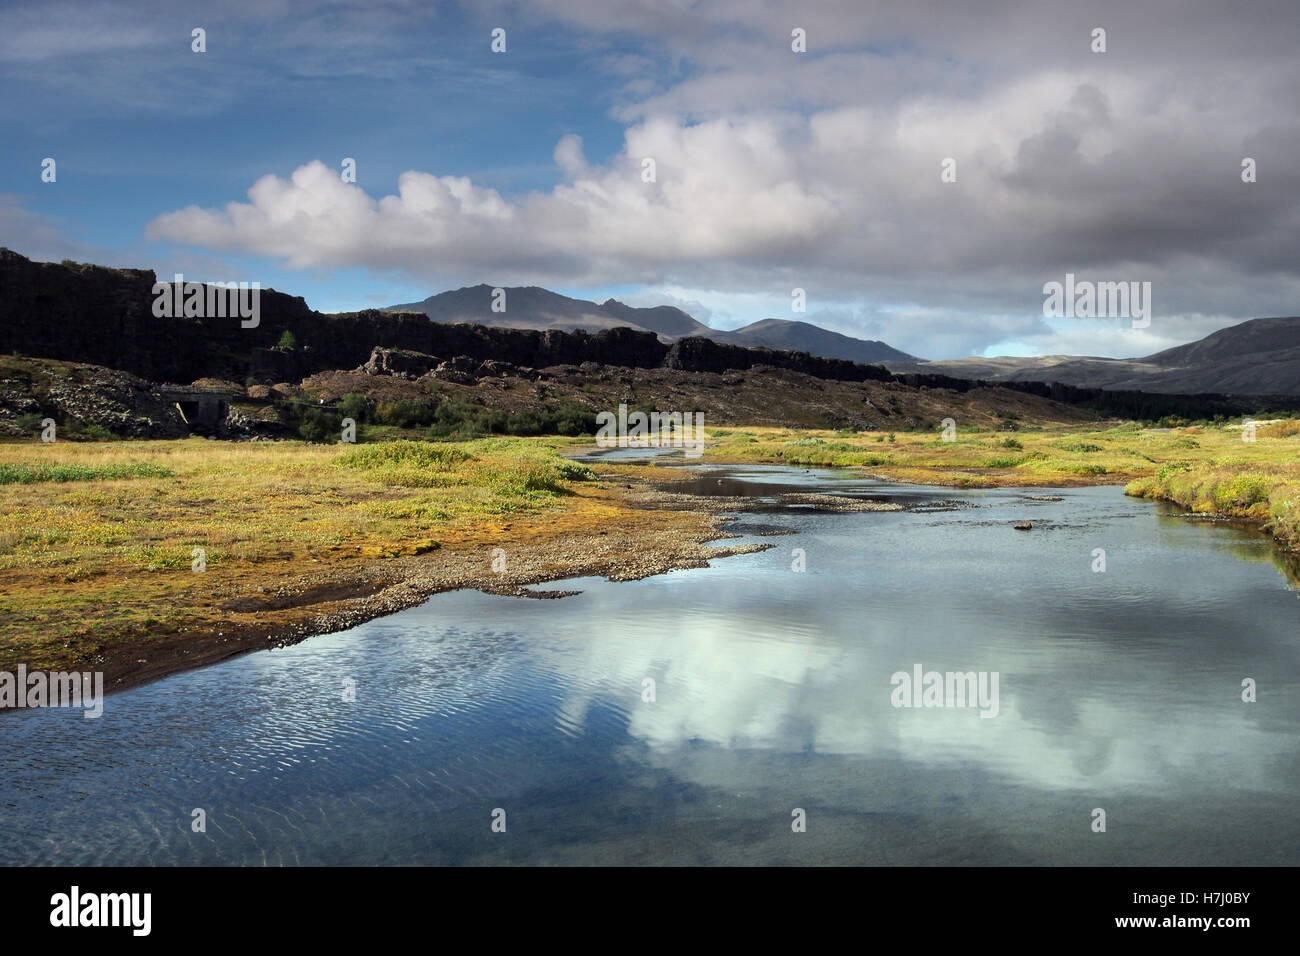 Le parc national de Thingvellir en Islande Photo Stock